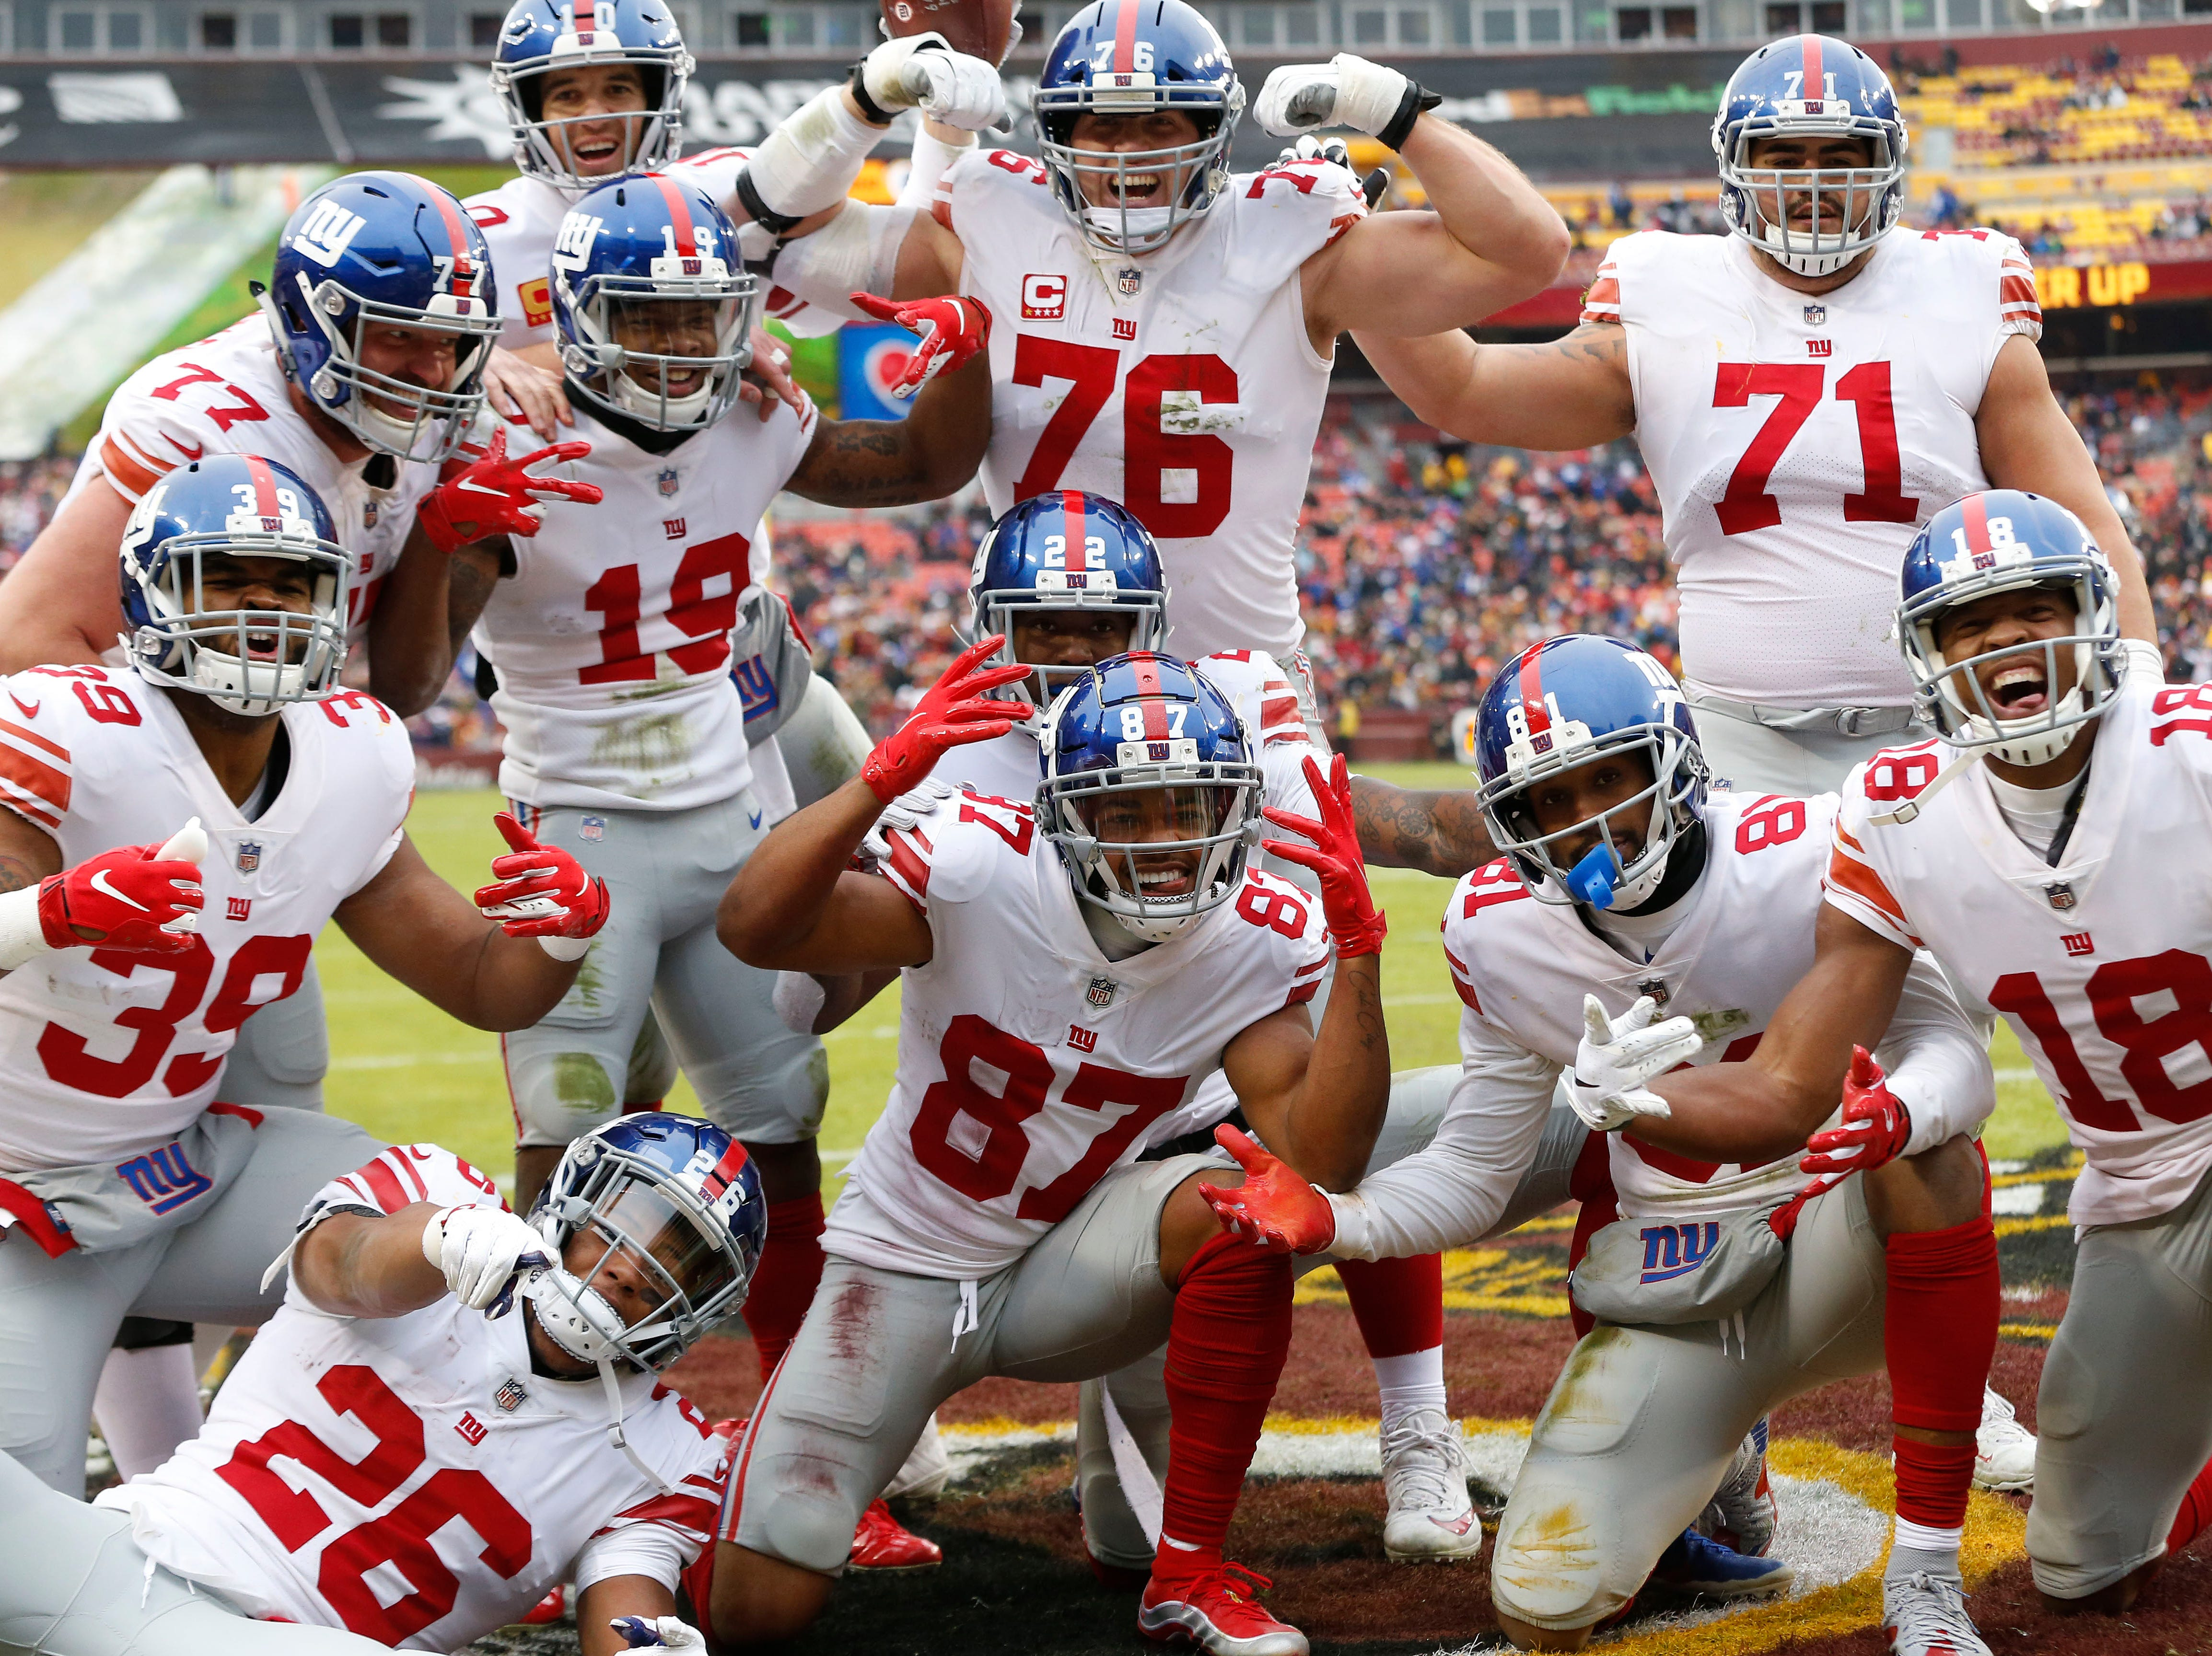 Giants players celebrate after Sterling Shepard's touchdown catch against the Redskins.